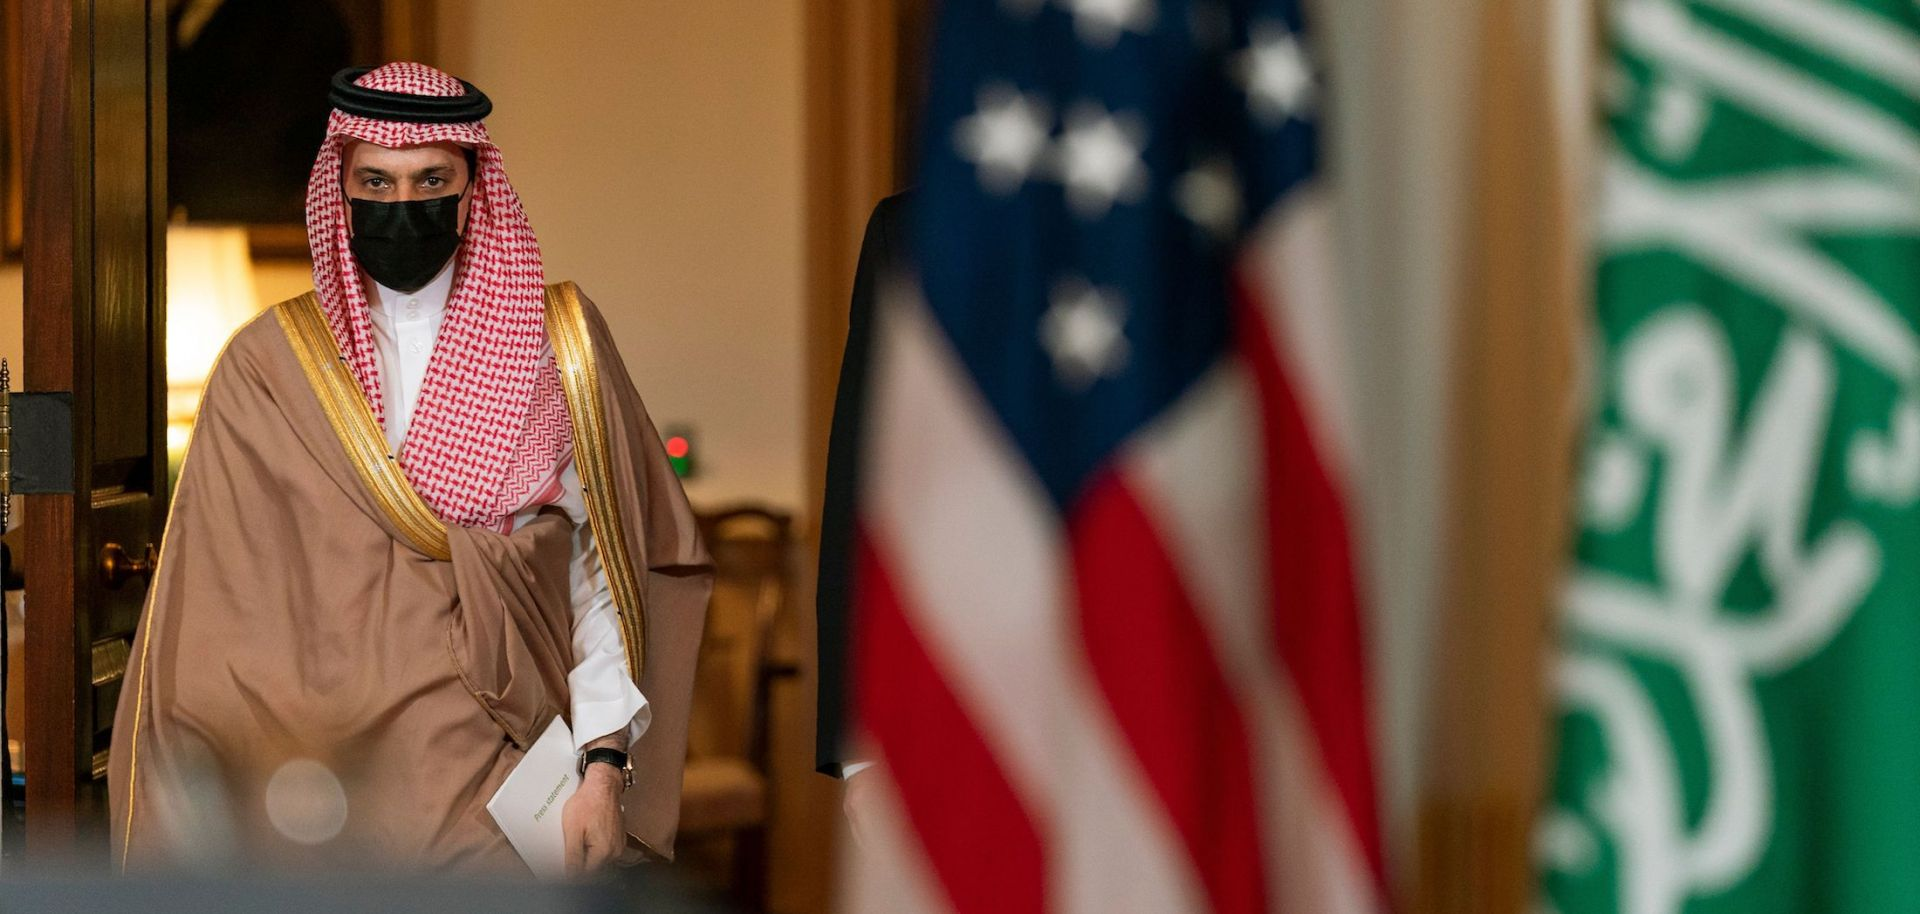 Foreign Minister Prince Faisal bin Farhan Al Saud walks the halls of the U.S. State Department in Washington D.C. after meeting with then-U.S. Secretary of State Mike Pompeo on Oct. 14, 2020.